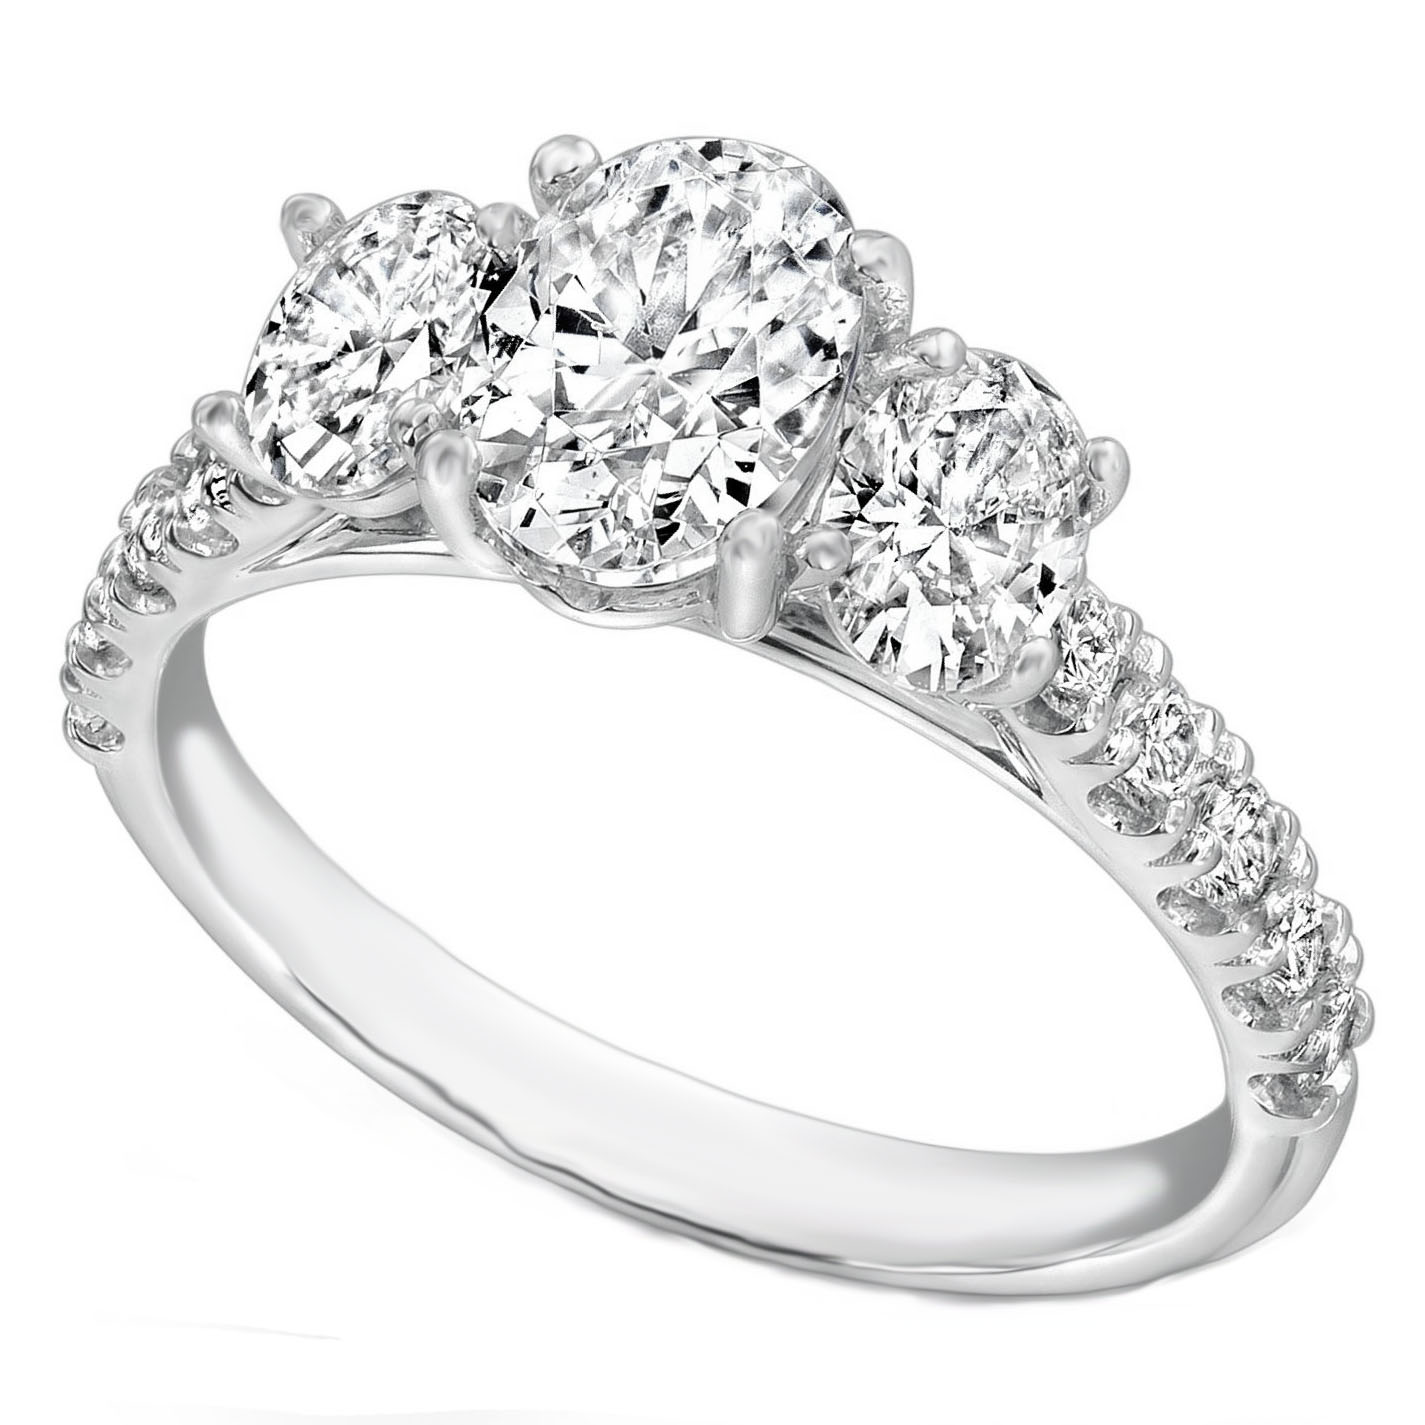 Stone Wedding Rings: Engagement Rings From MDC Diamonds NYC